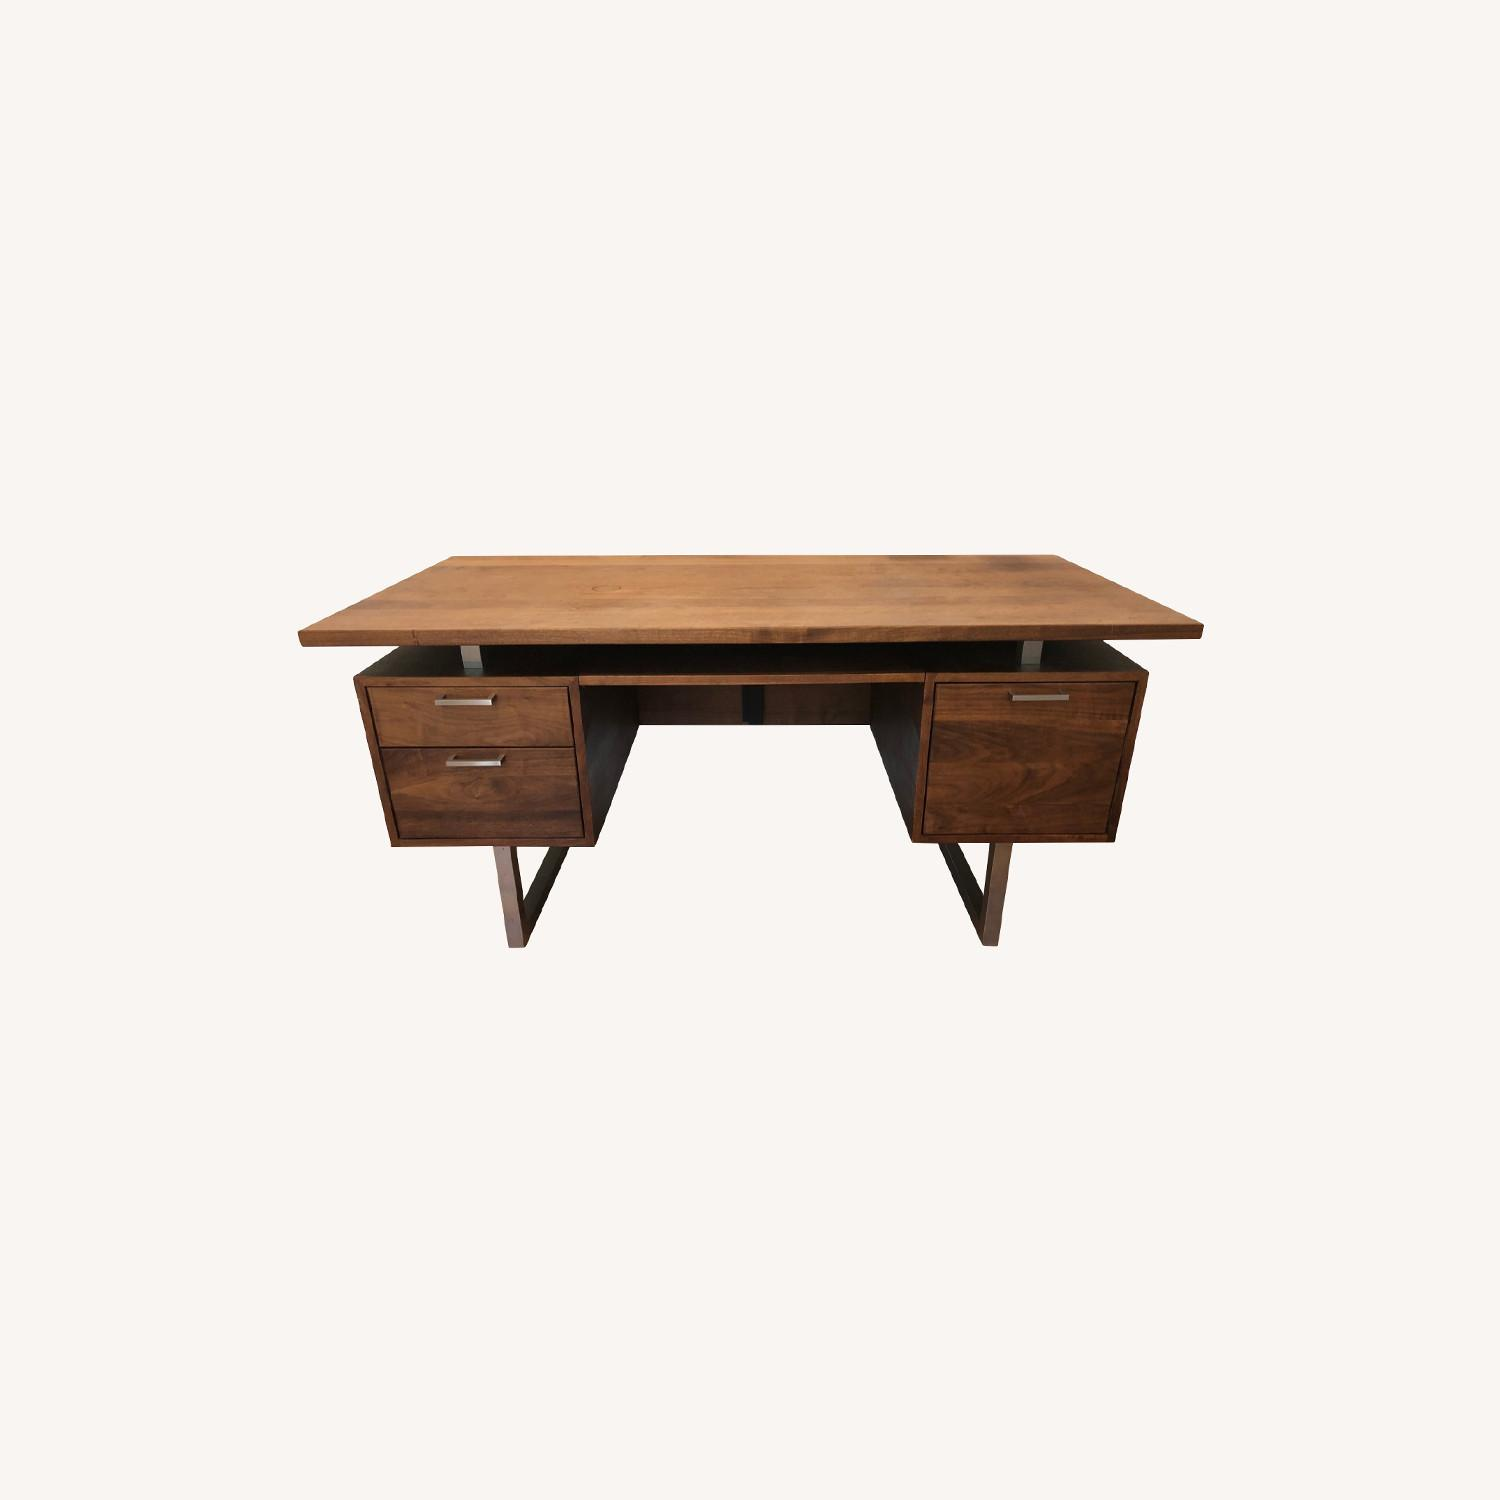 Crate & Barrel Clybourn Desk in Walnut - image-0